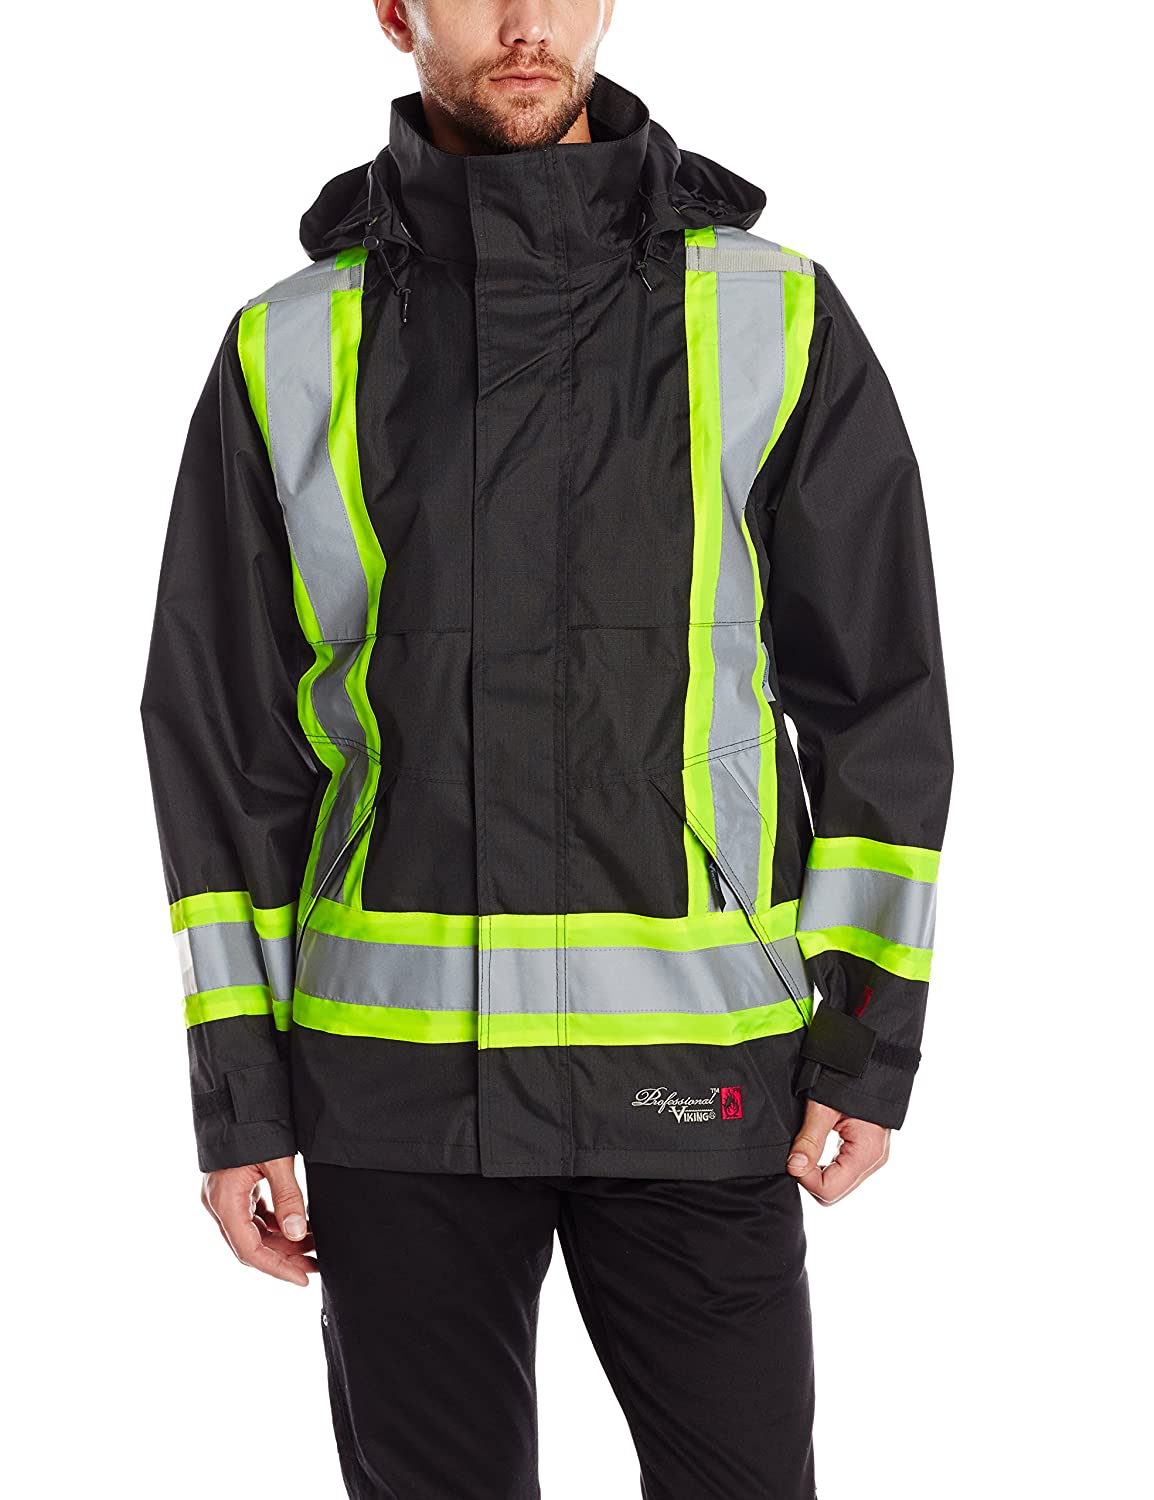 Viking Professional Journeyman FR Waterproof Flame Resistant Jacket, Black, Small